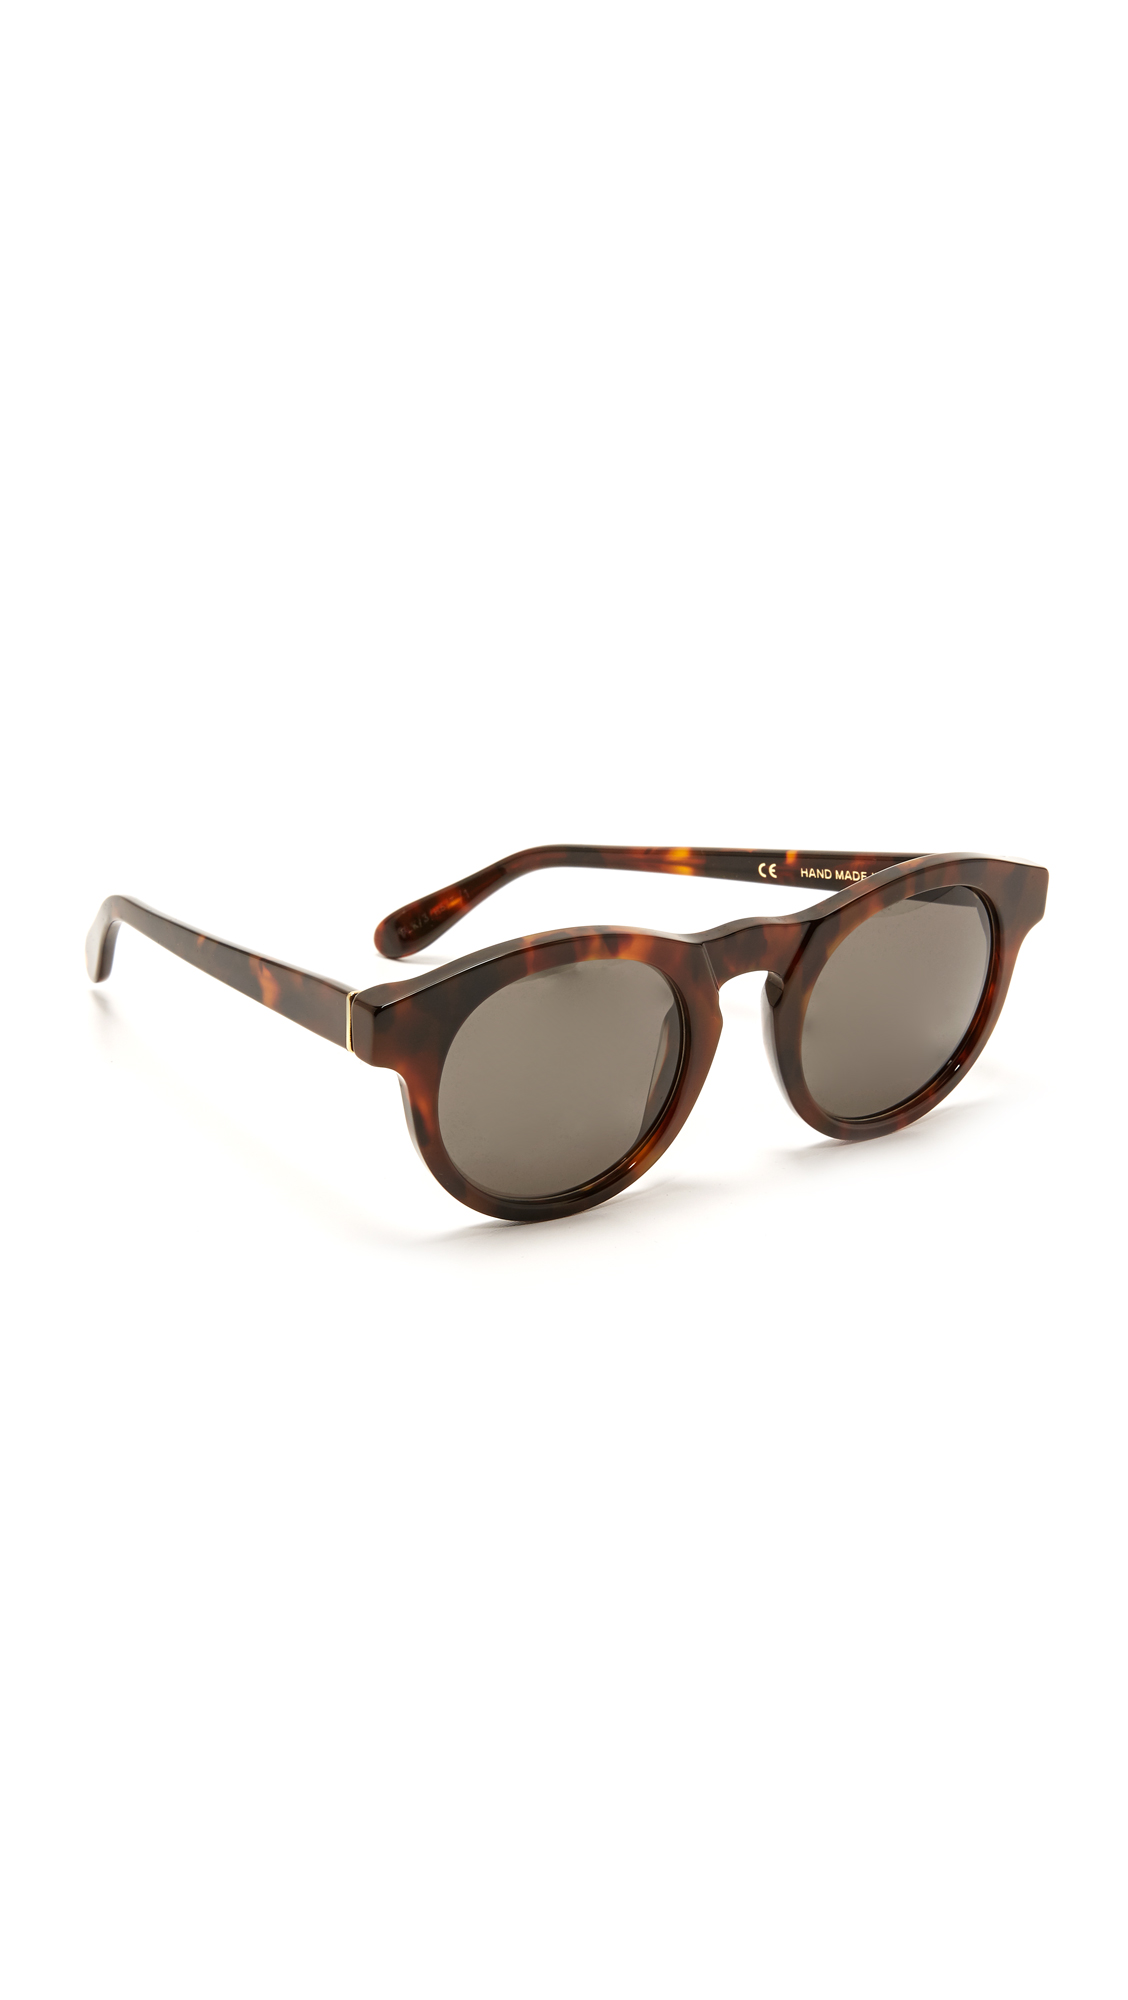 Chunky tortoiseshell Super Sunglasses with glossy frames and tinted lenses. Cleaning cloth and pouch included. Round frame. Non polarized lenses. Made in Italy. Measurements Width: 5.75in / 14.5cm Height: 2in / 5cm Lens Width: 50mm. Available sizes: One